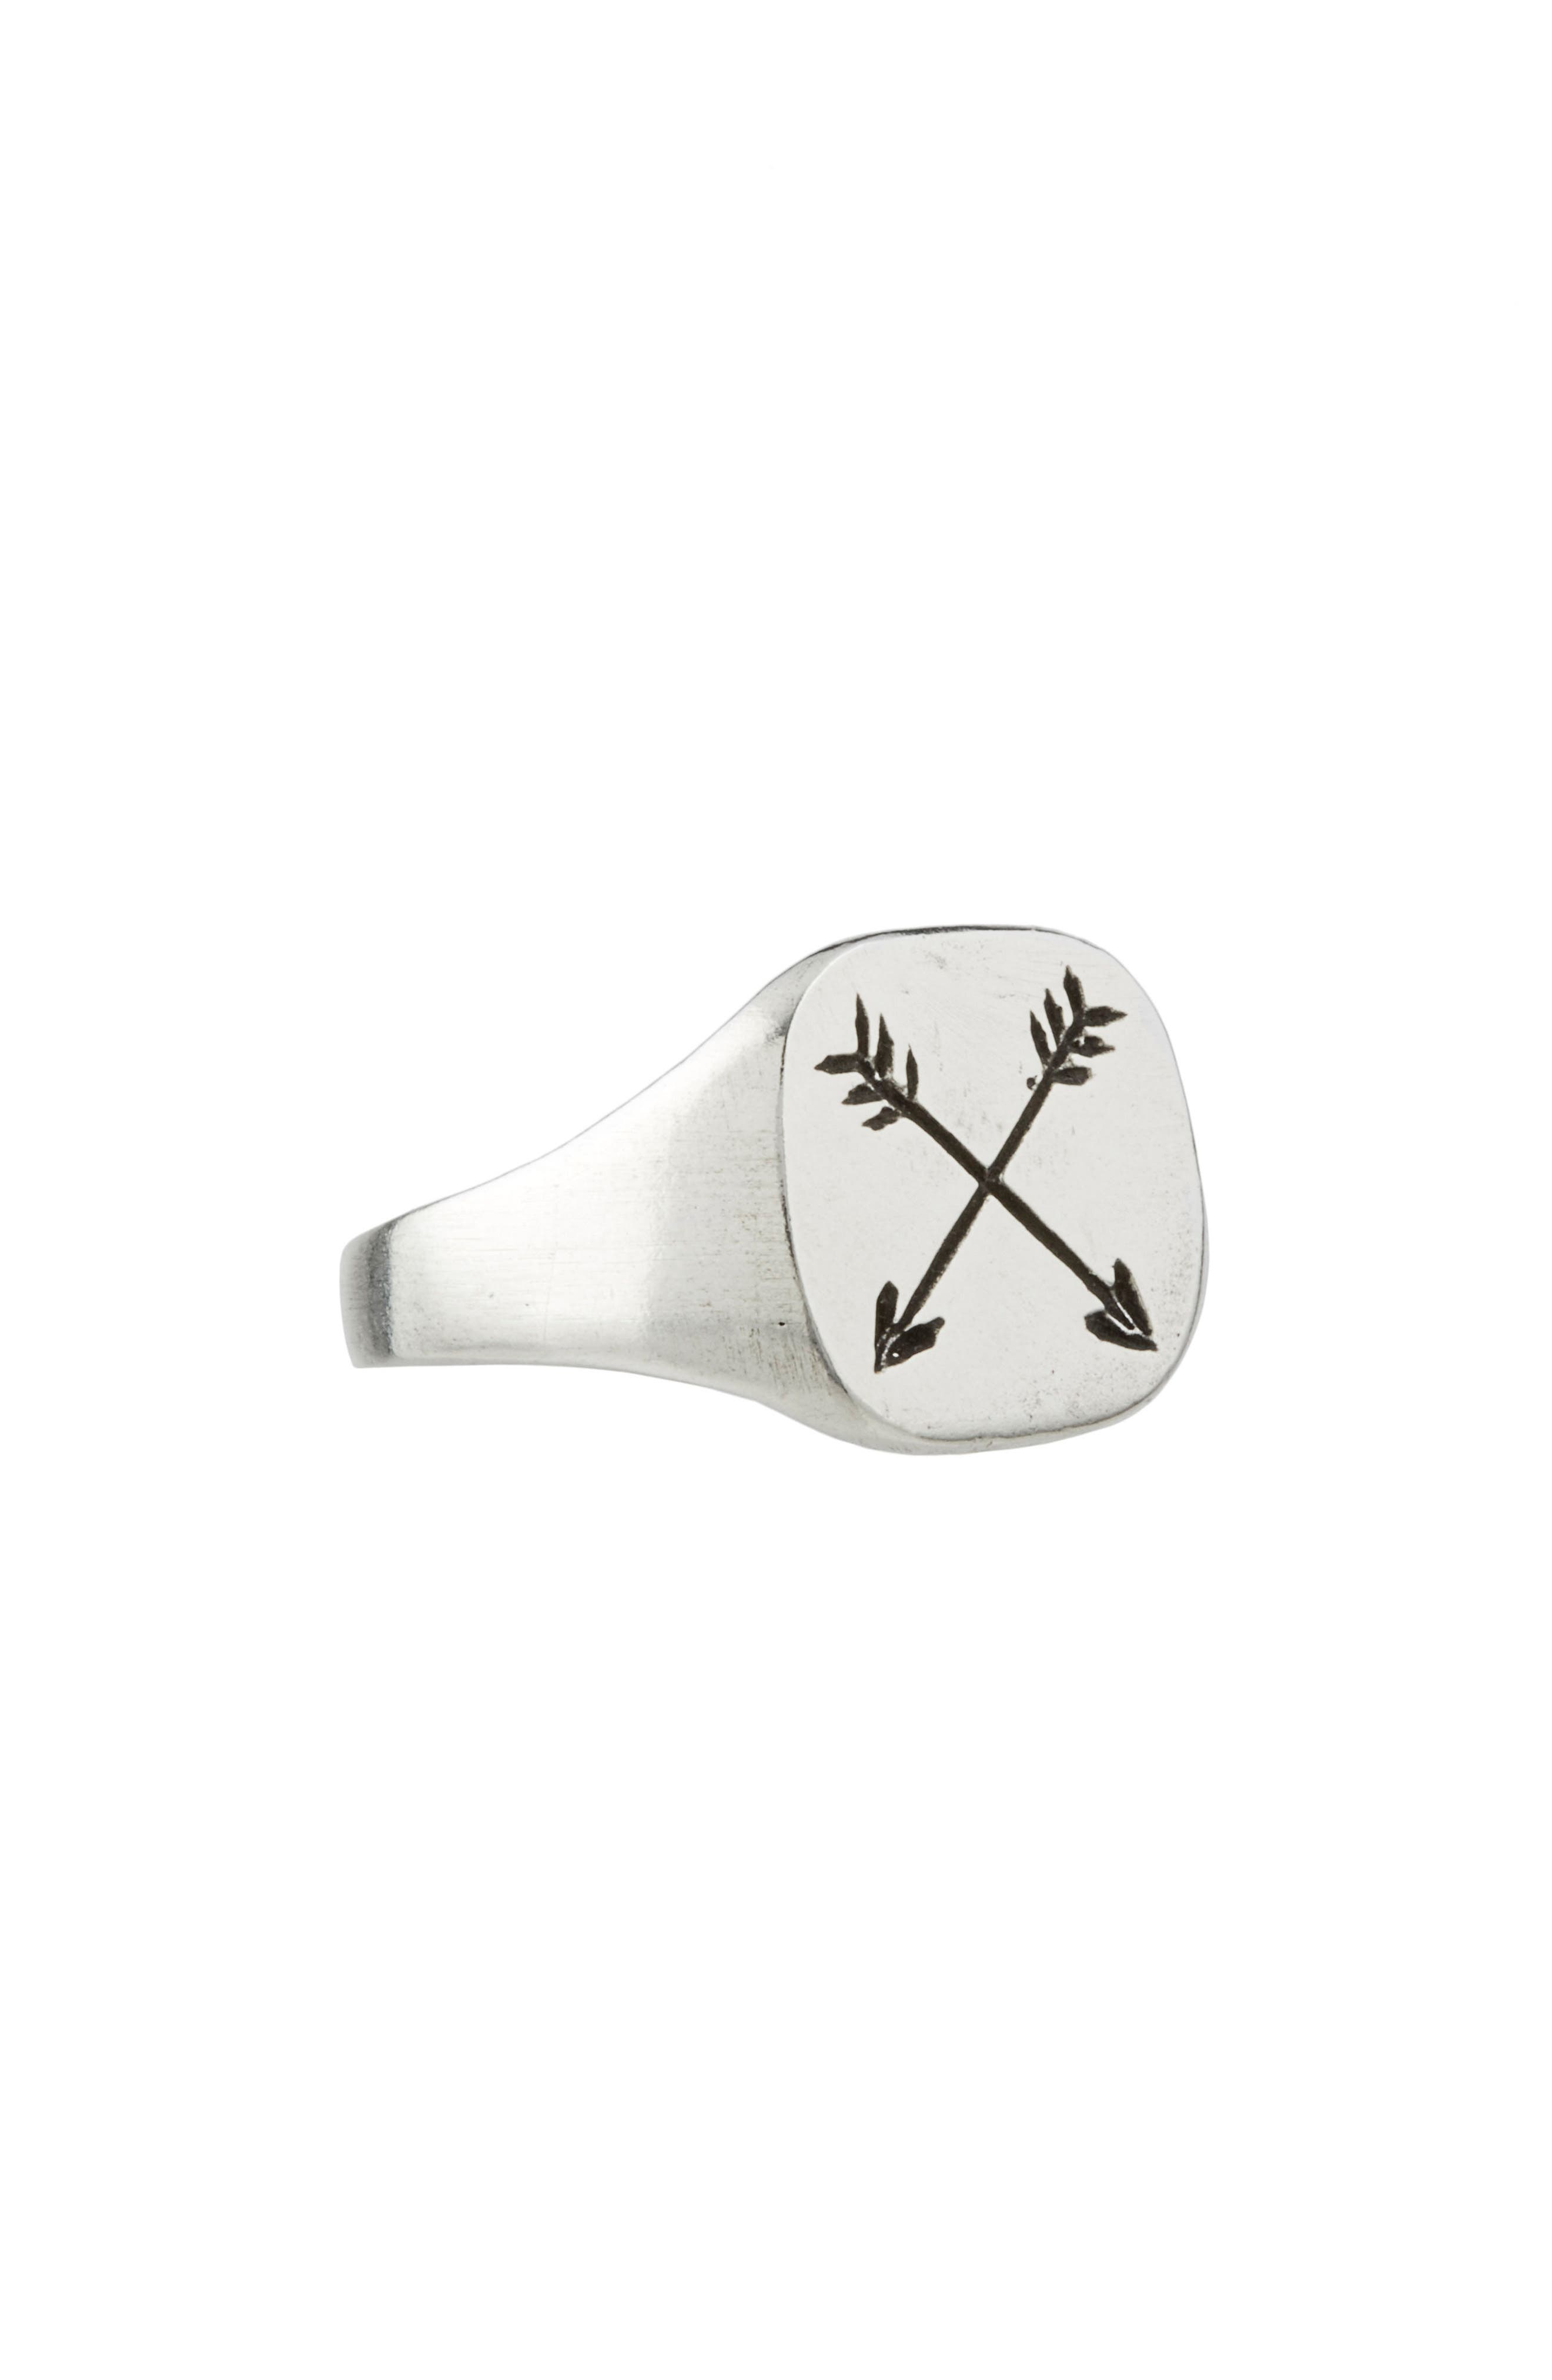 Arrow Ring,                             Main thumbnail 1, color,                             Silver